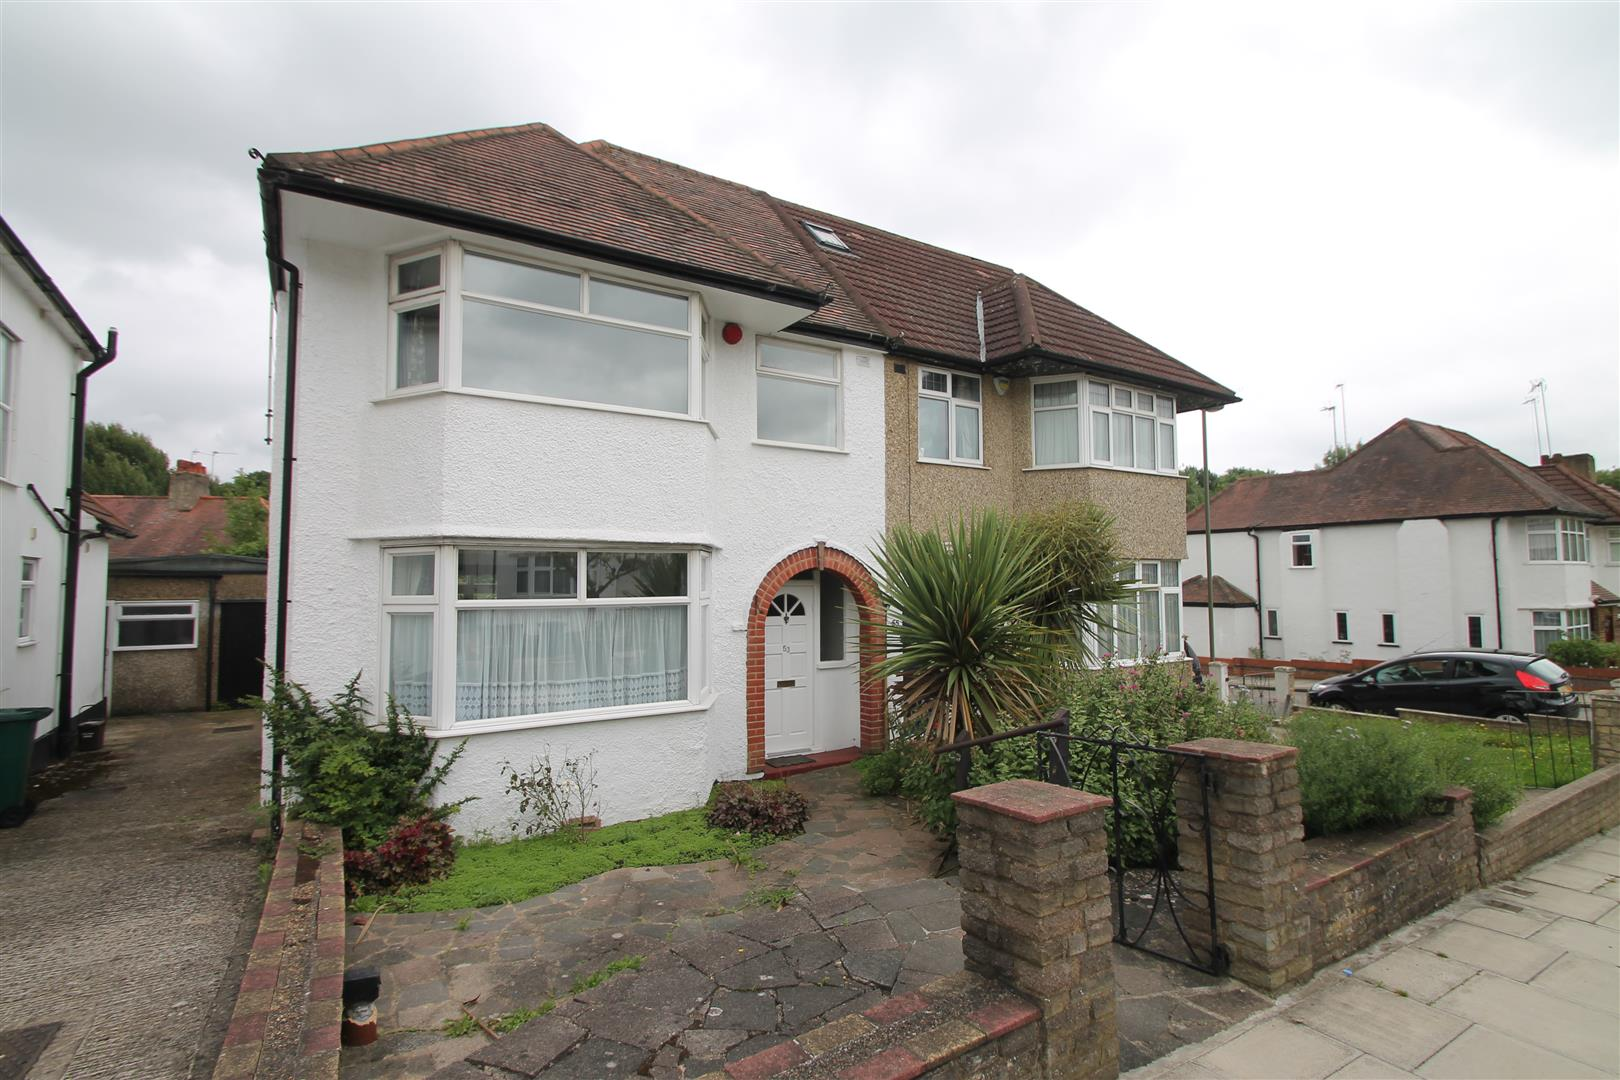 3 Bedrooms Property for sale in Holders Hill Drive, London NW4 1NL